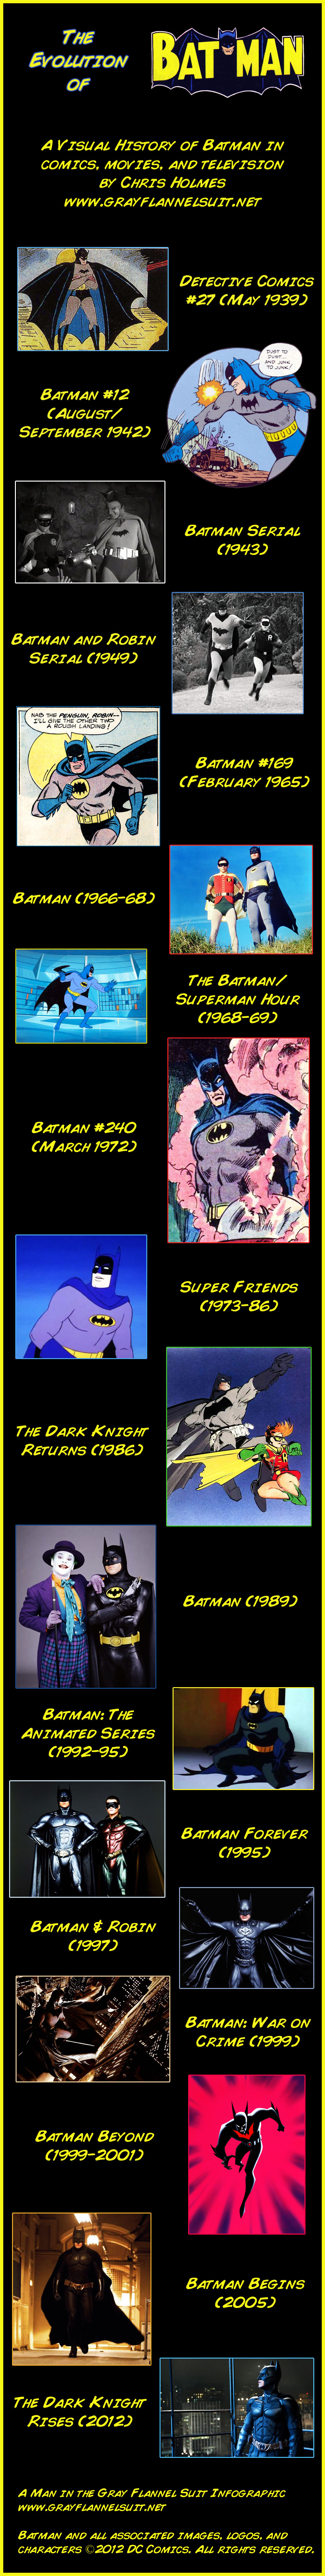 A Visual History of Batman Comics